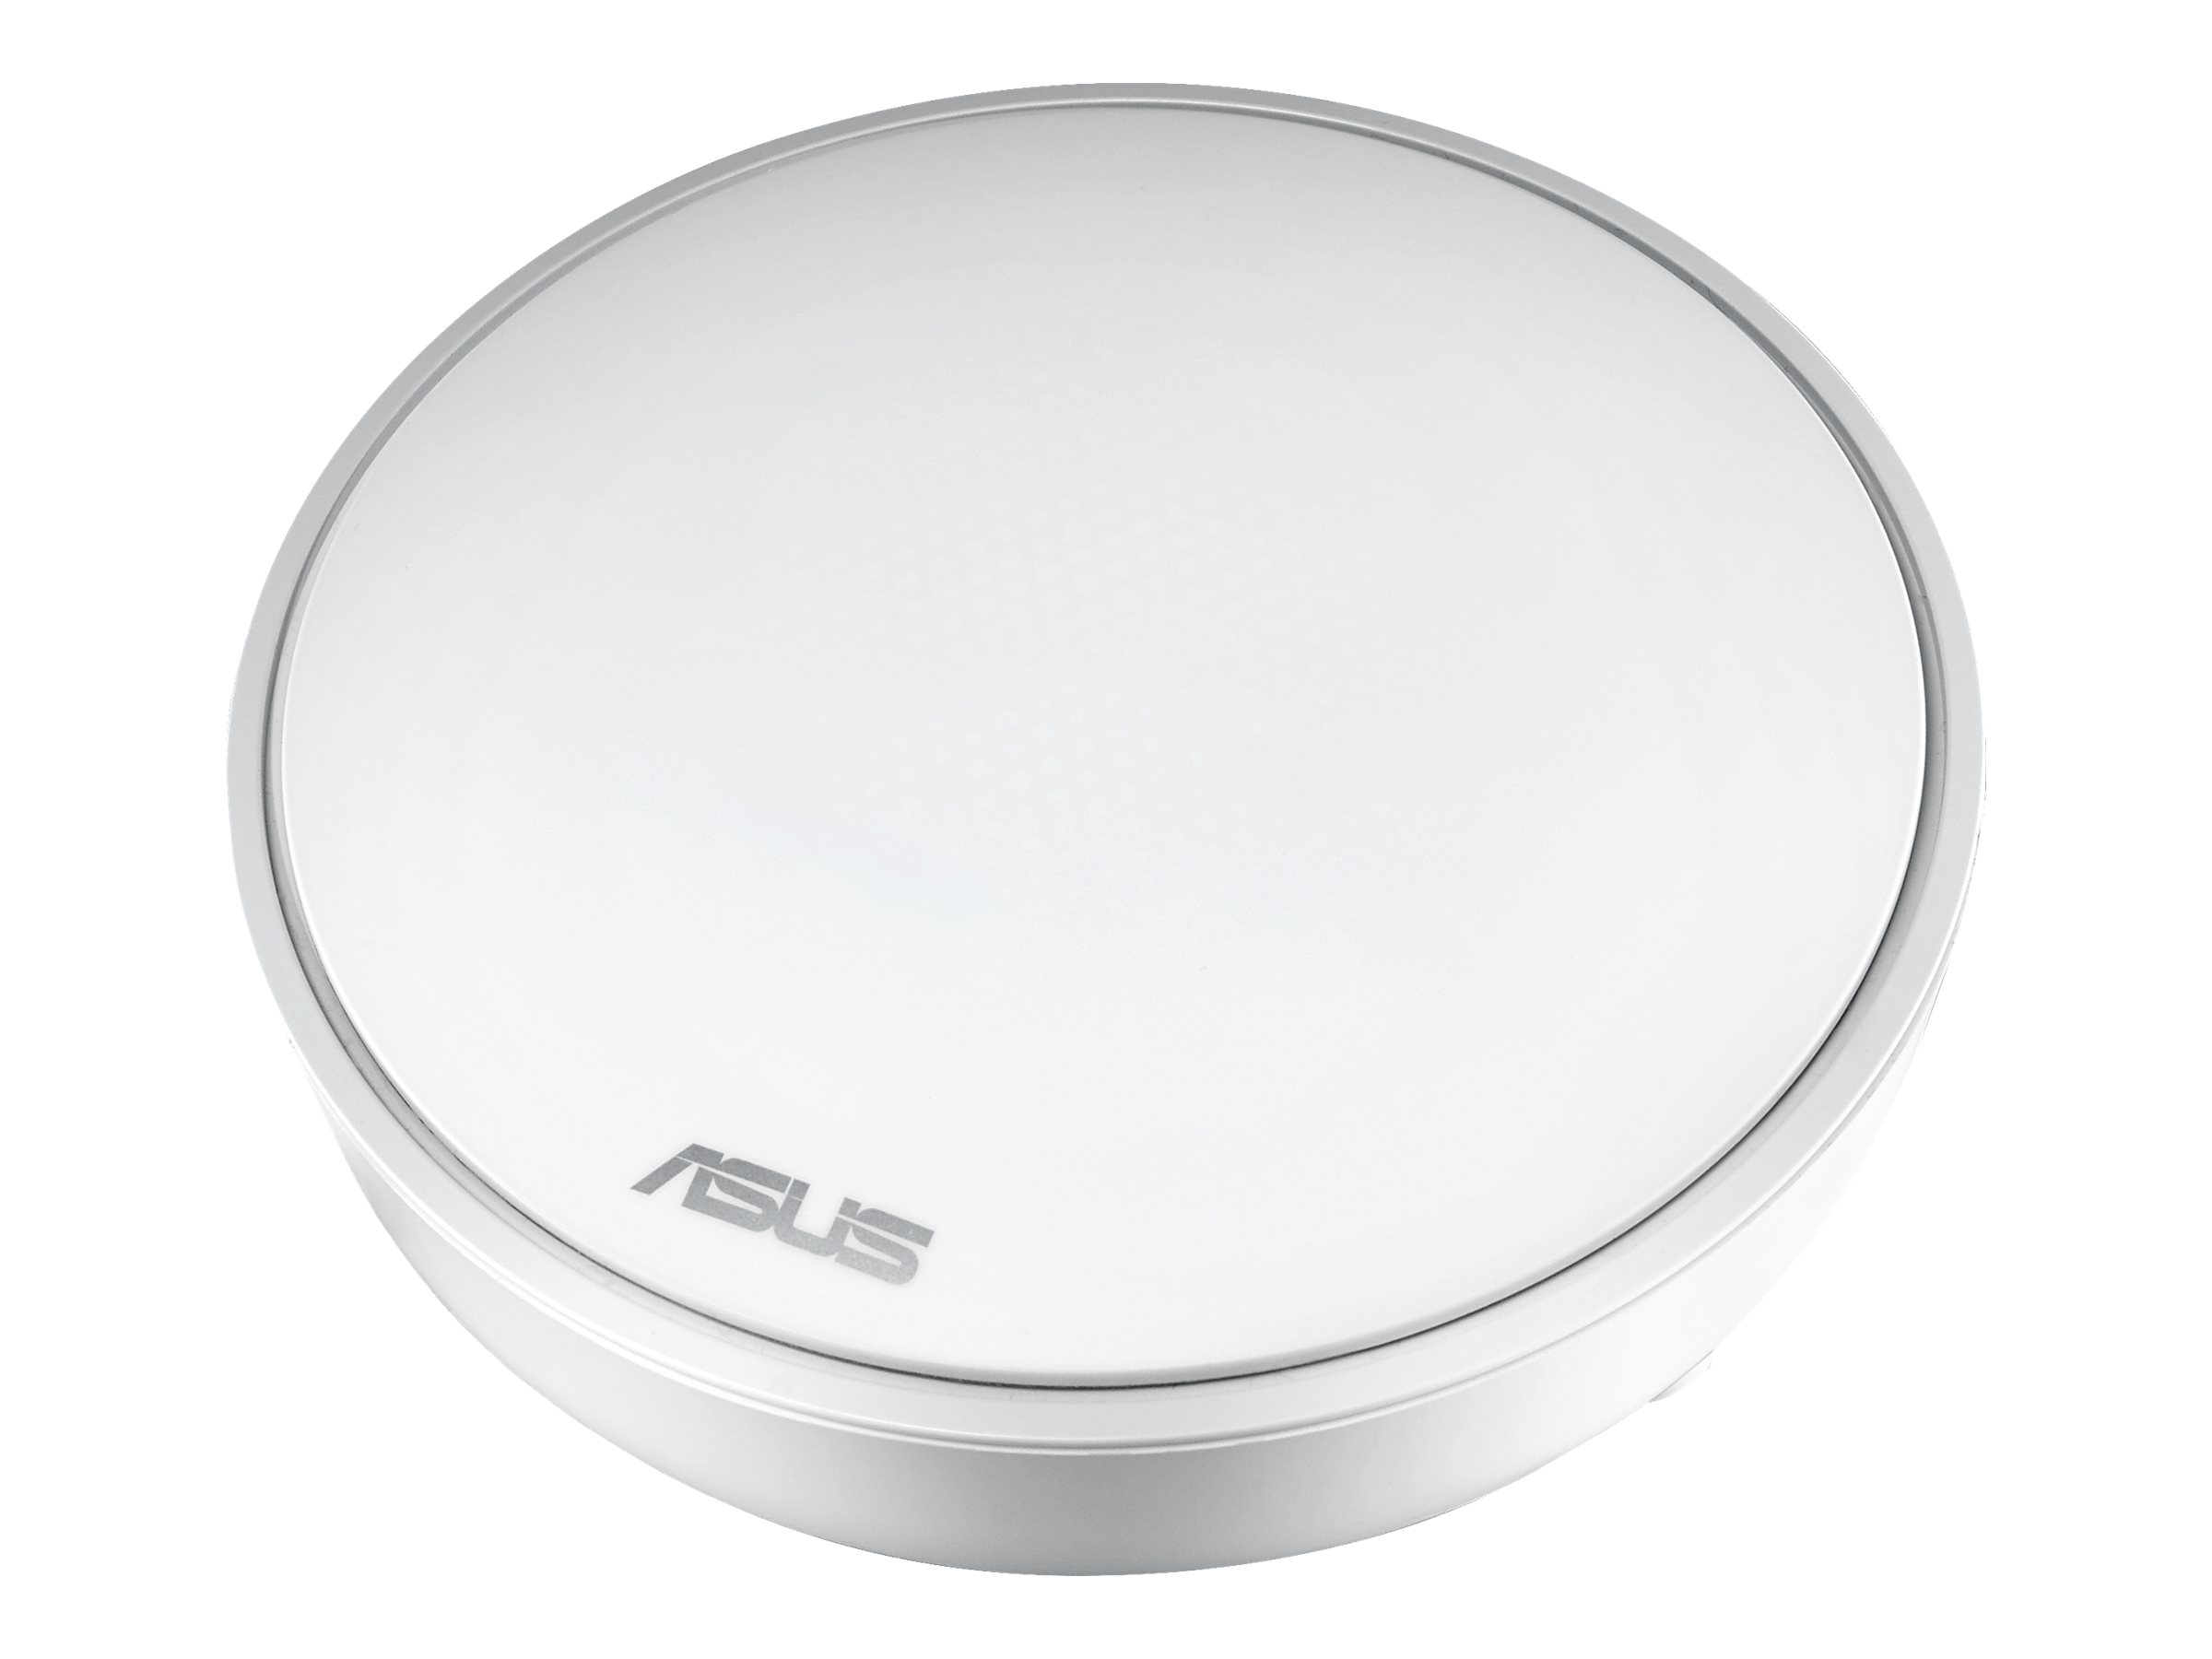 ASUS Lyra - WLAN-System (3 Router) - Netz - GigE - 802.11a/b/g/n/ac - Tri-Band